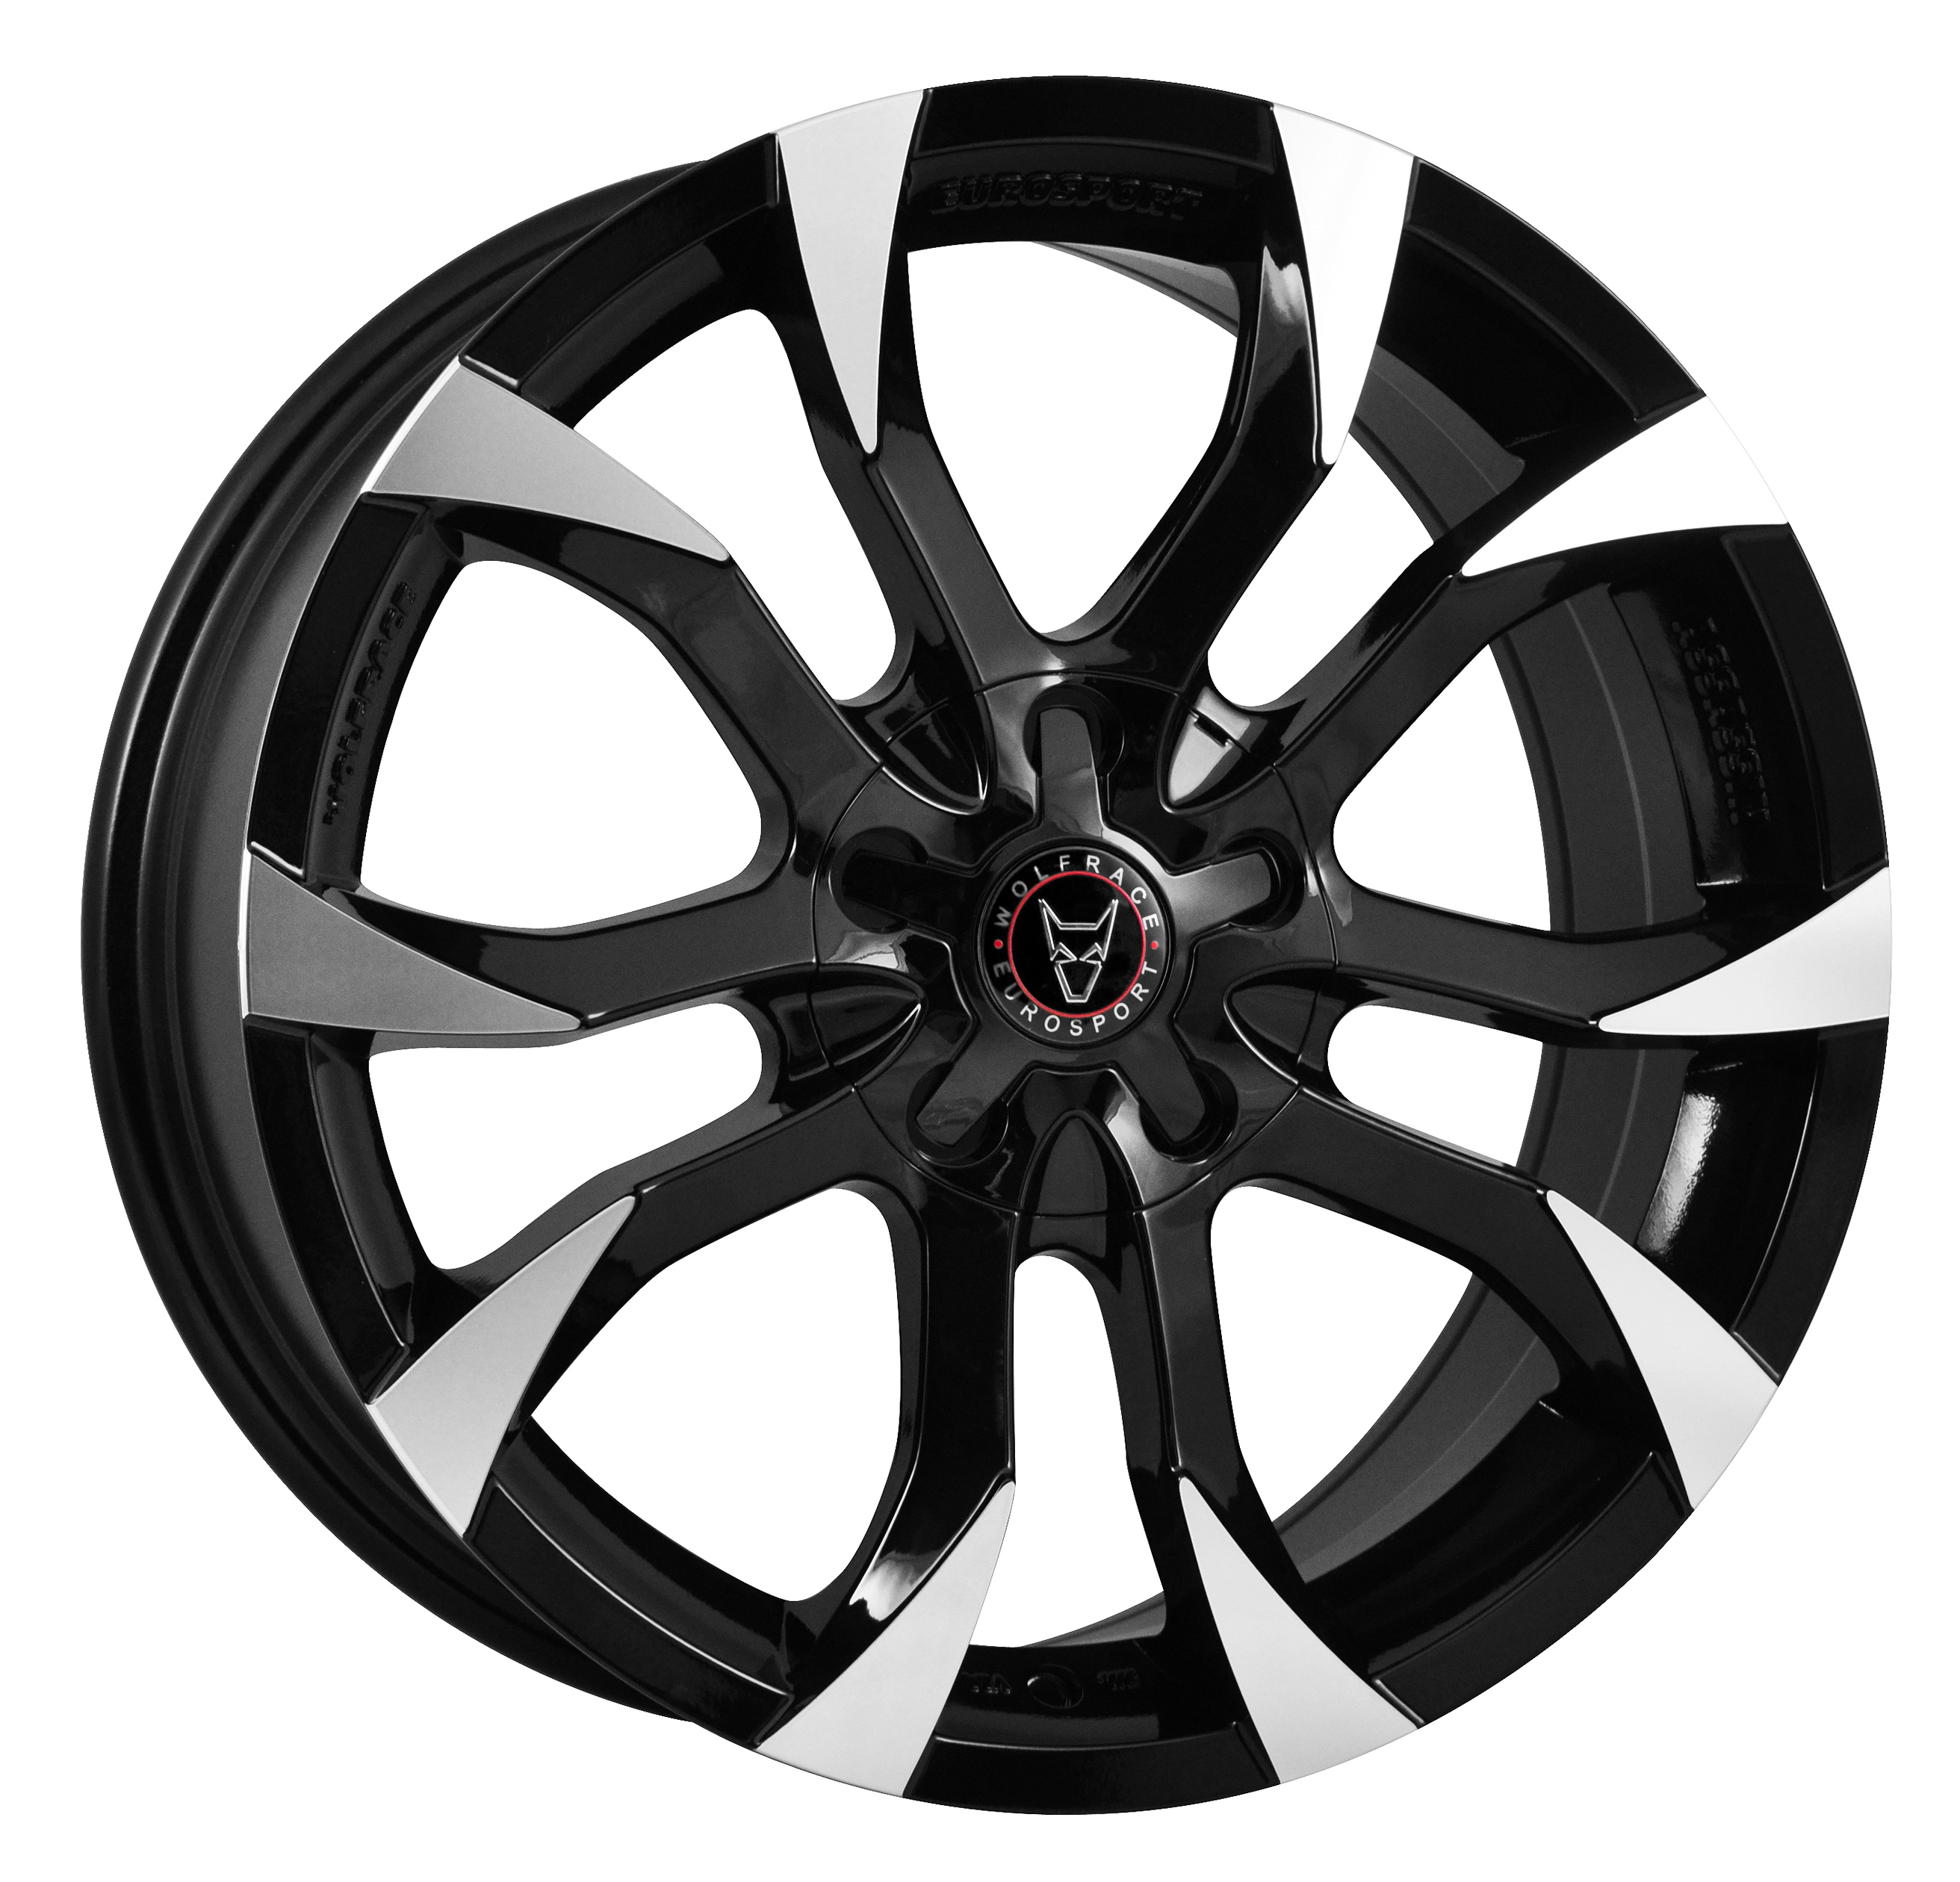 WOLFRACE EUROSPORT ASSASSIN 7x17 5x100/112 ET35 BLACK POLISHED